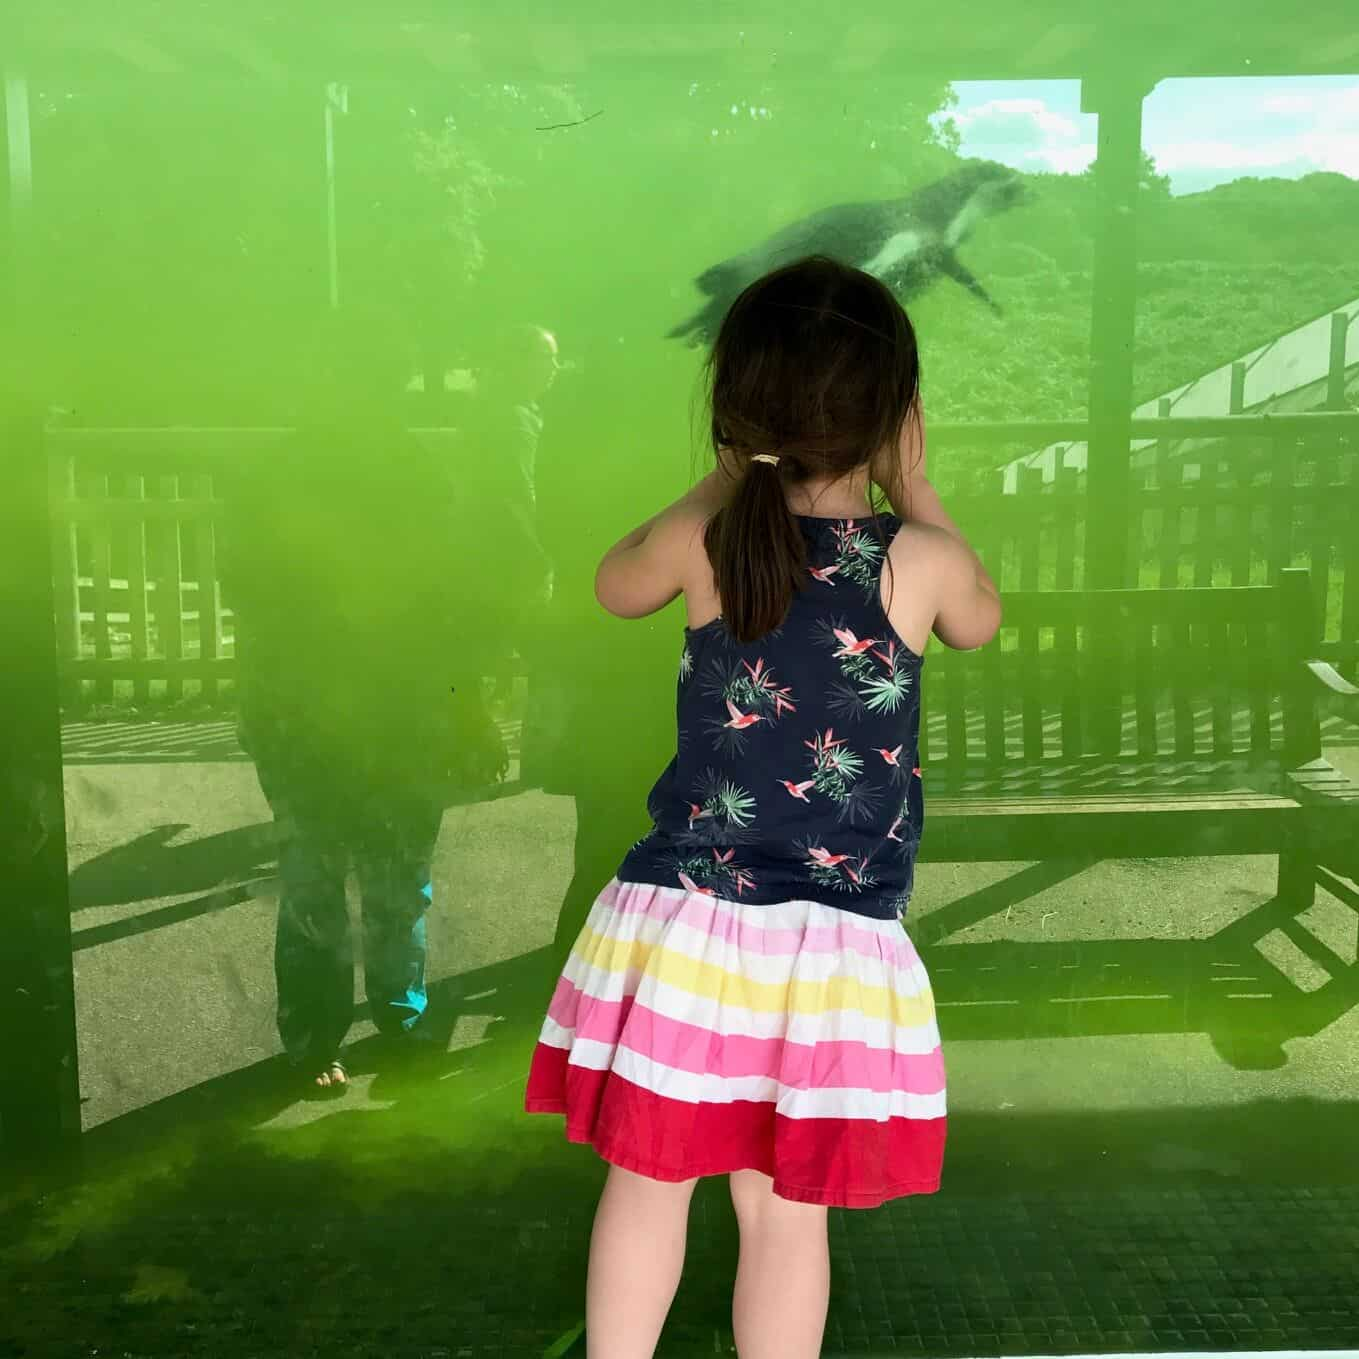 Thea watching penguins at Woburn Safari Park